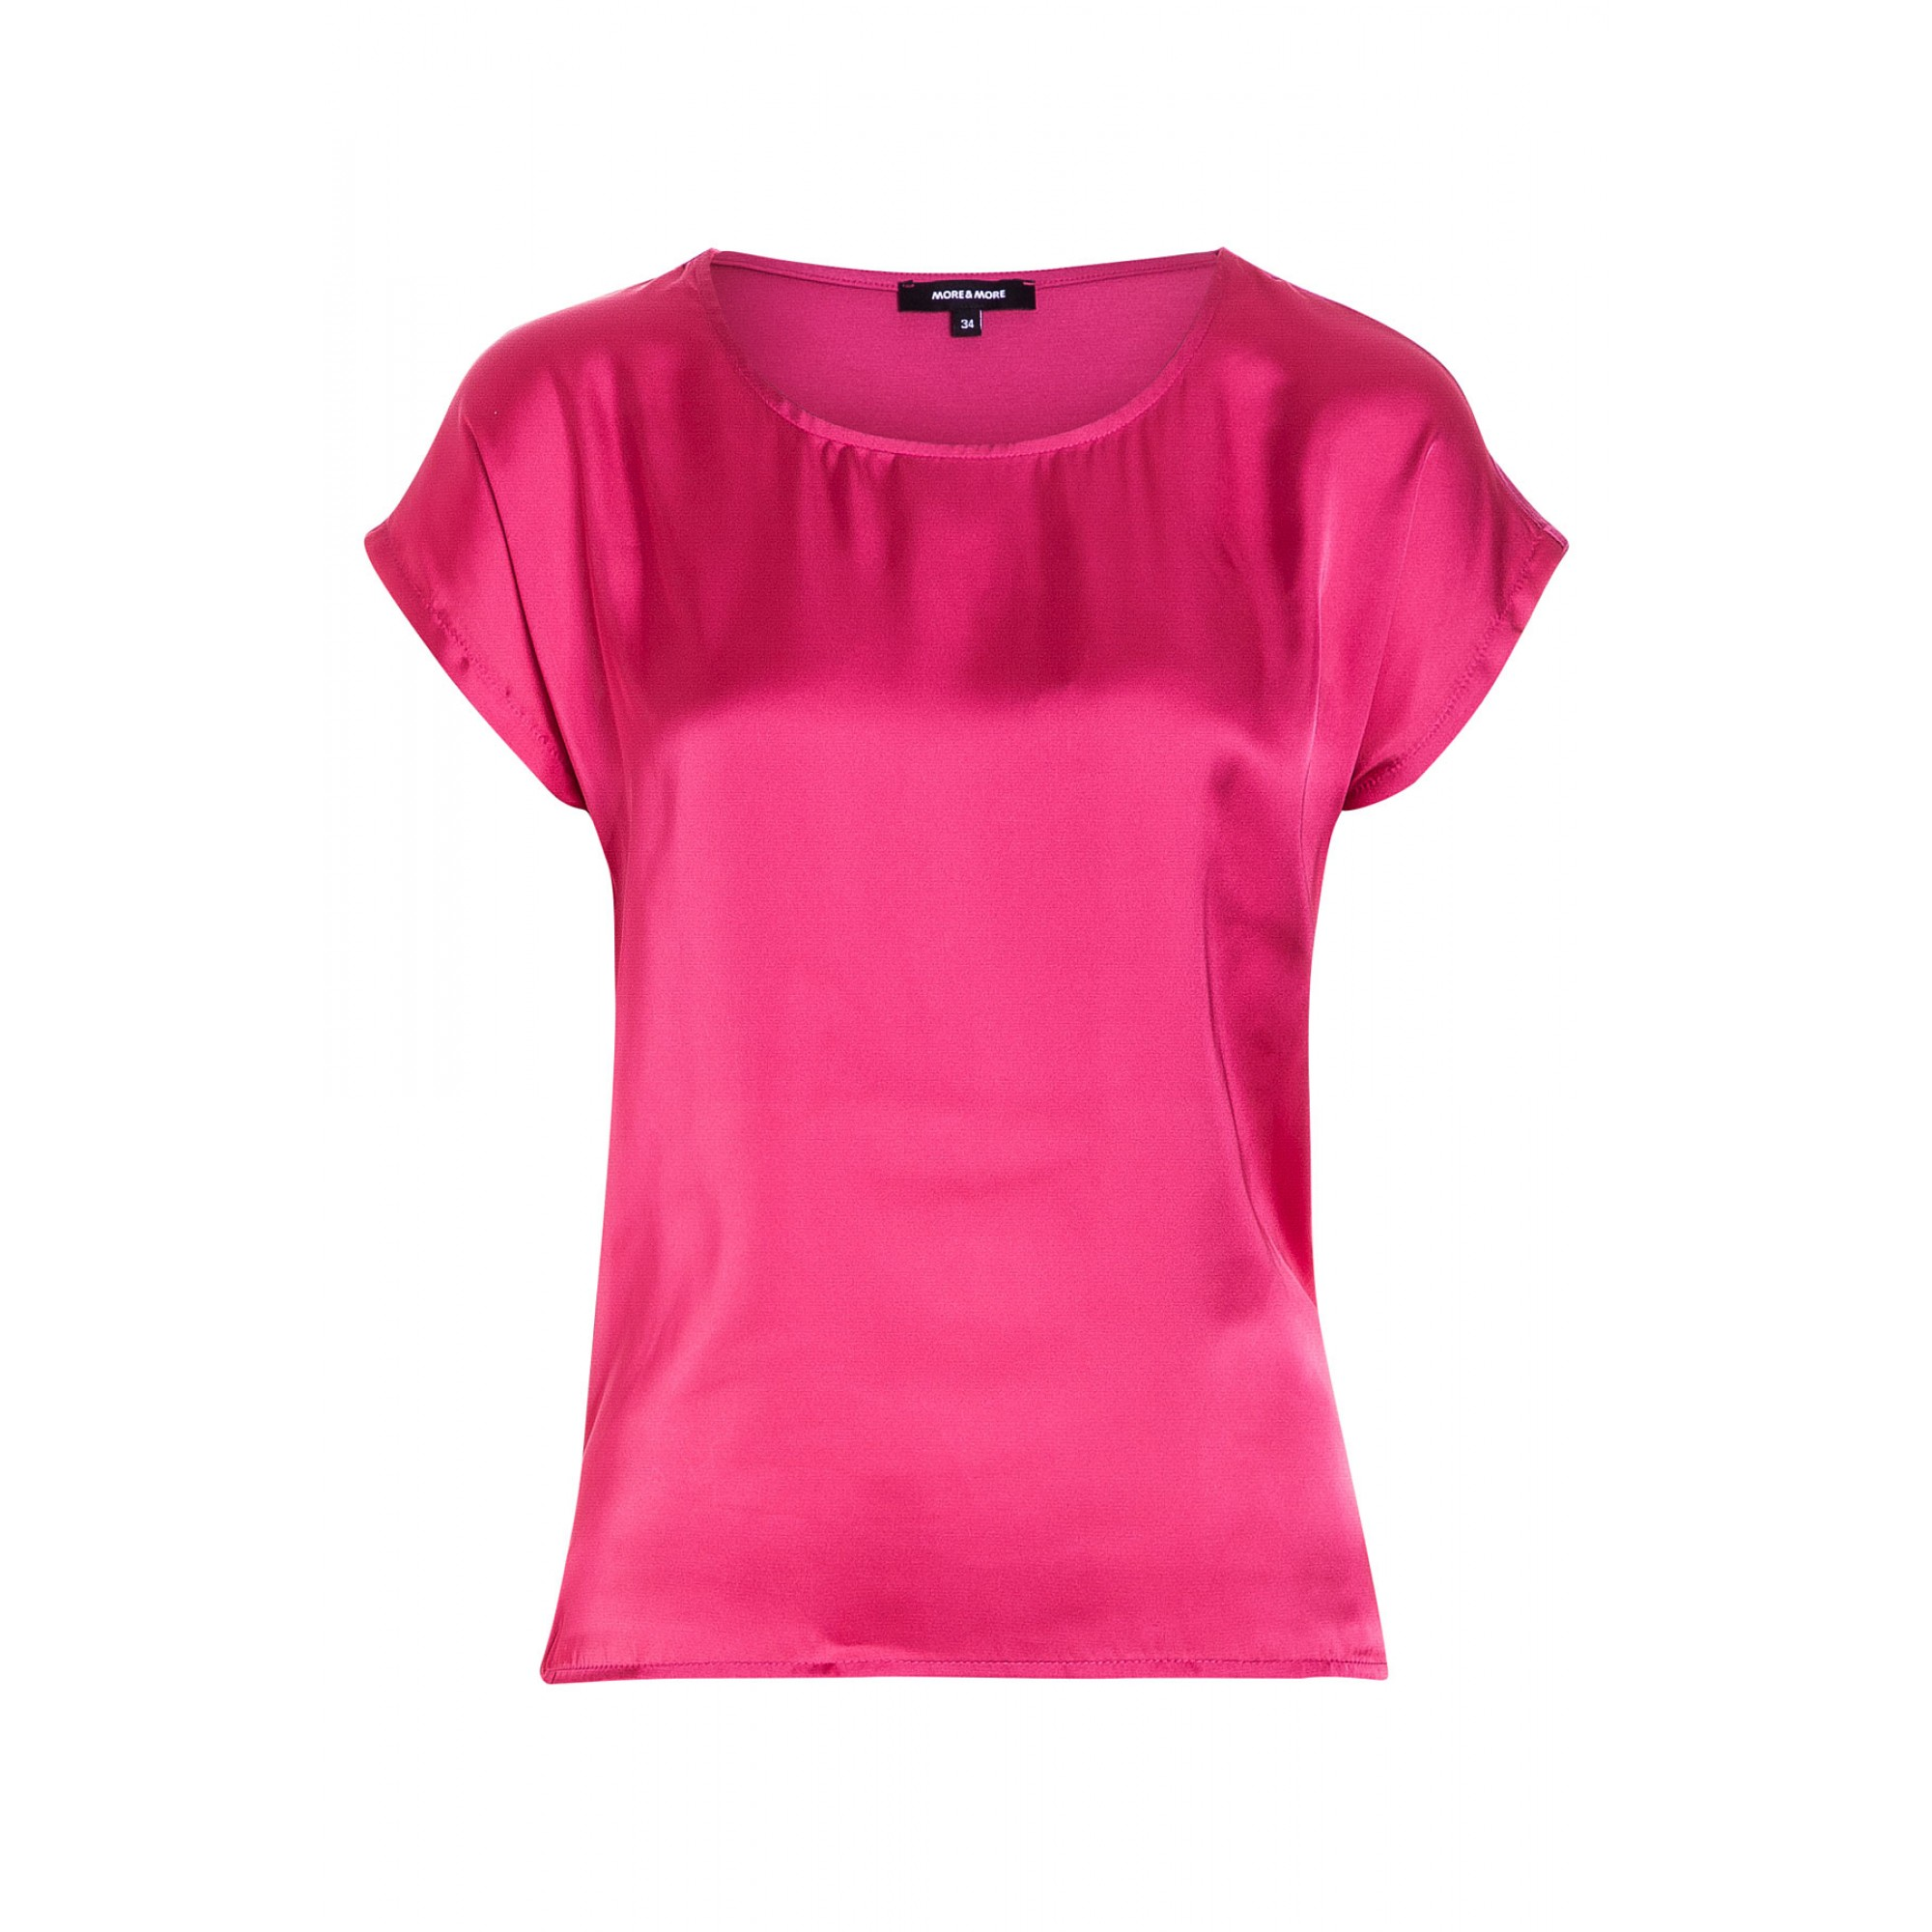 Shirt mit Satinfront, pink 71120520-0832 1